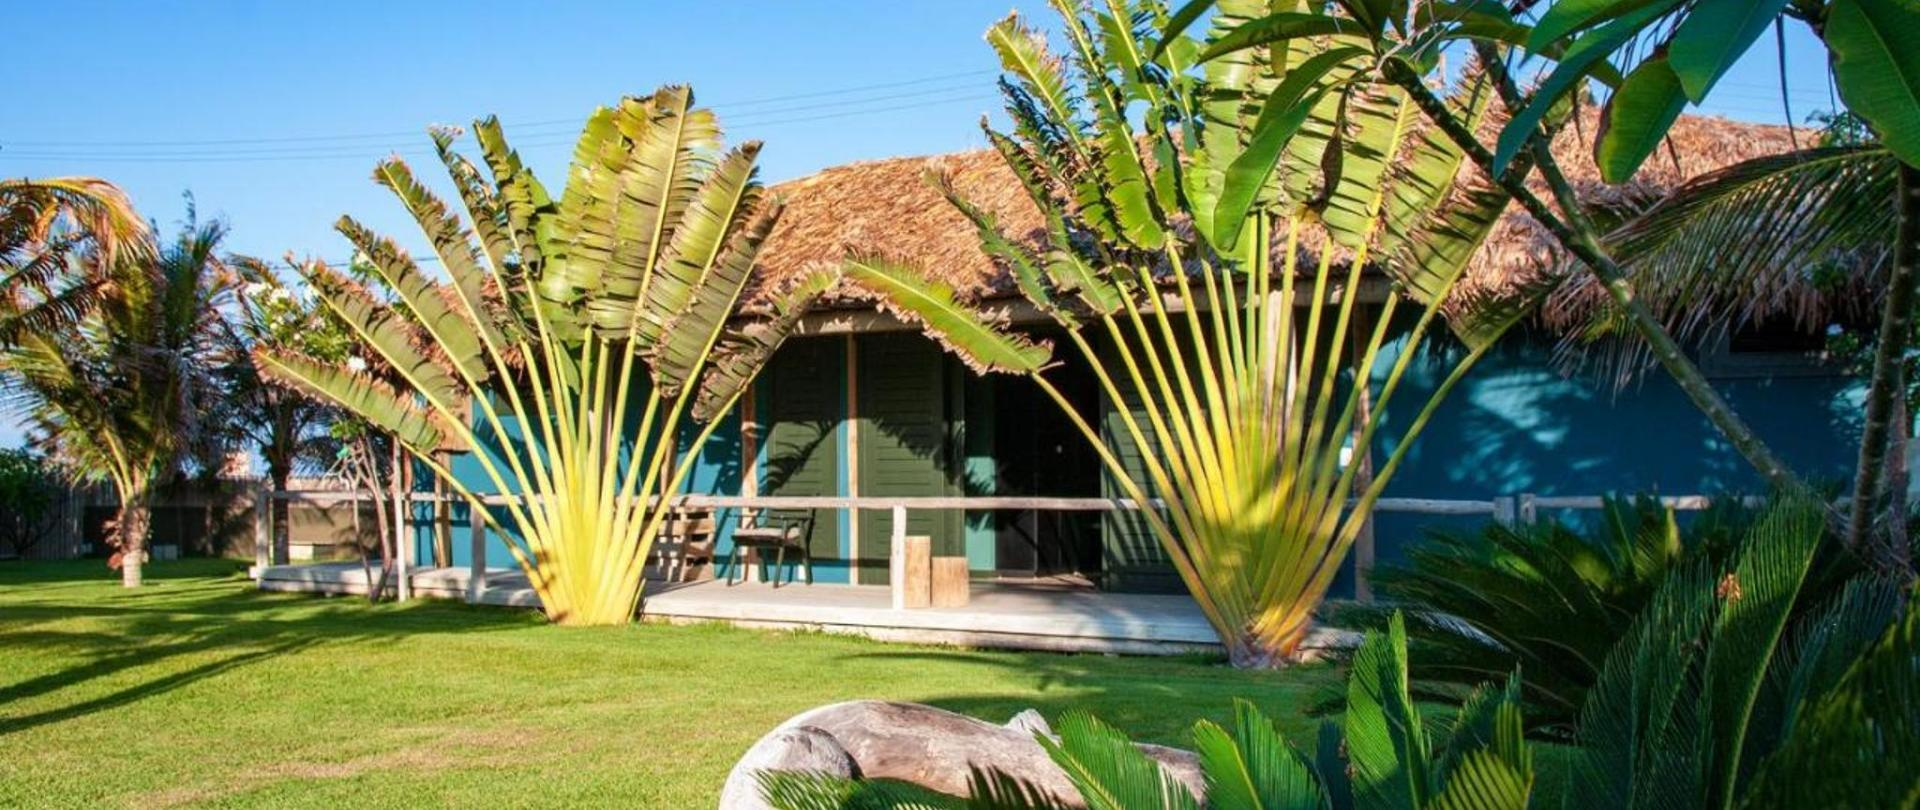 Villa VeraTheresa Adults Only